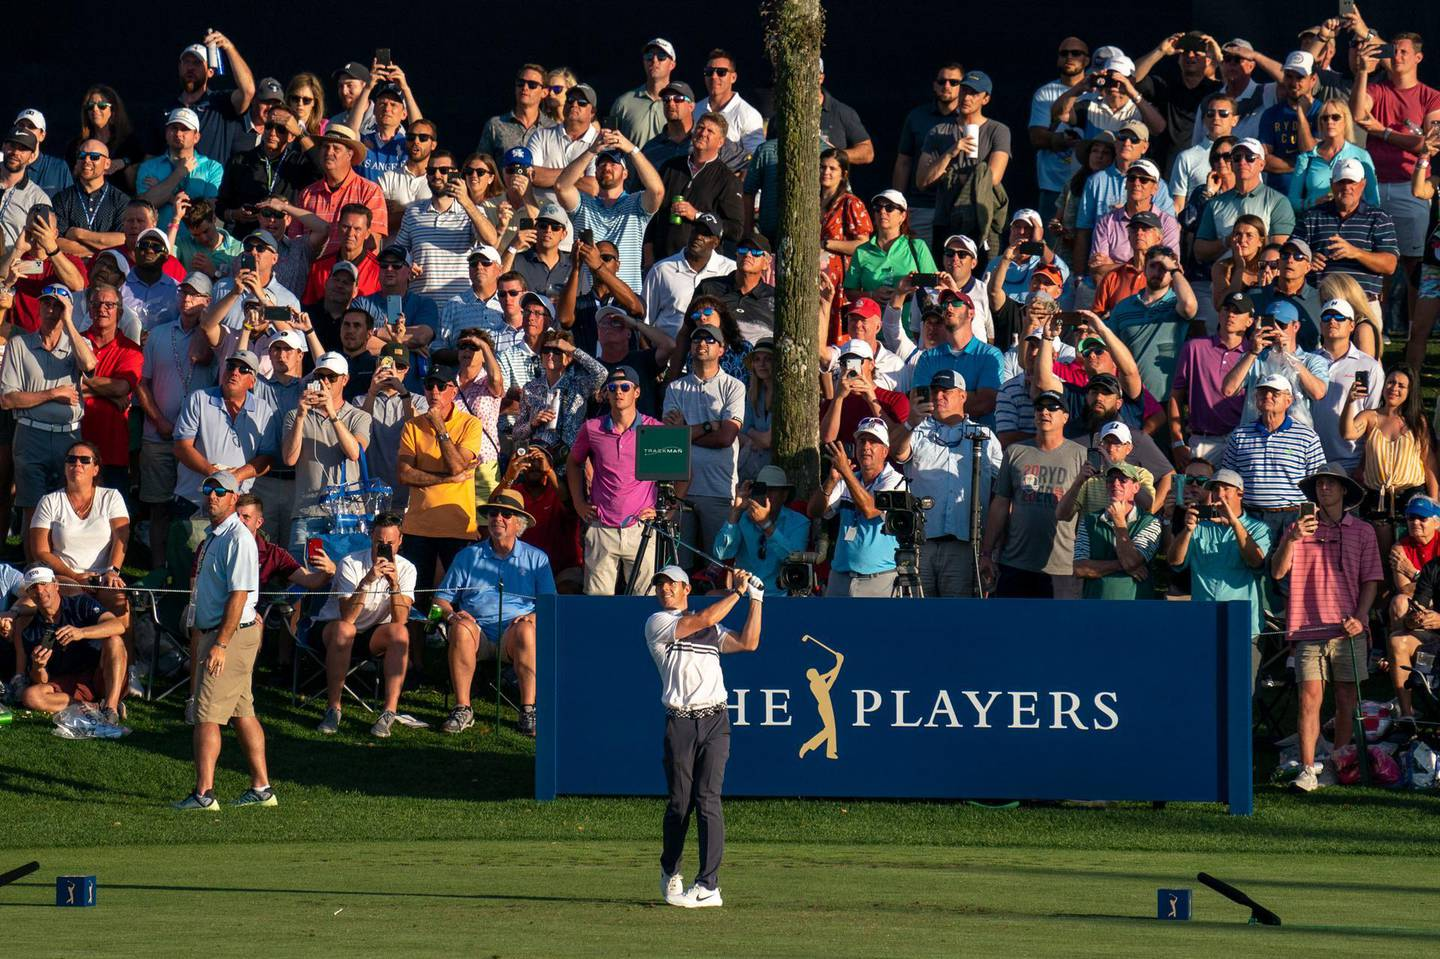 March 12, 2020; Ponte Vedra Beach, Florida, USA; Rory McIlroy hits his tee shot on the 17th hole during the first round of the 2020 edition of The Players Championship golf tournament at TPC Sawgrass - Stadium Course. Mandatory Credit: Kyle Terada-USA TODAY Sports